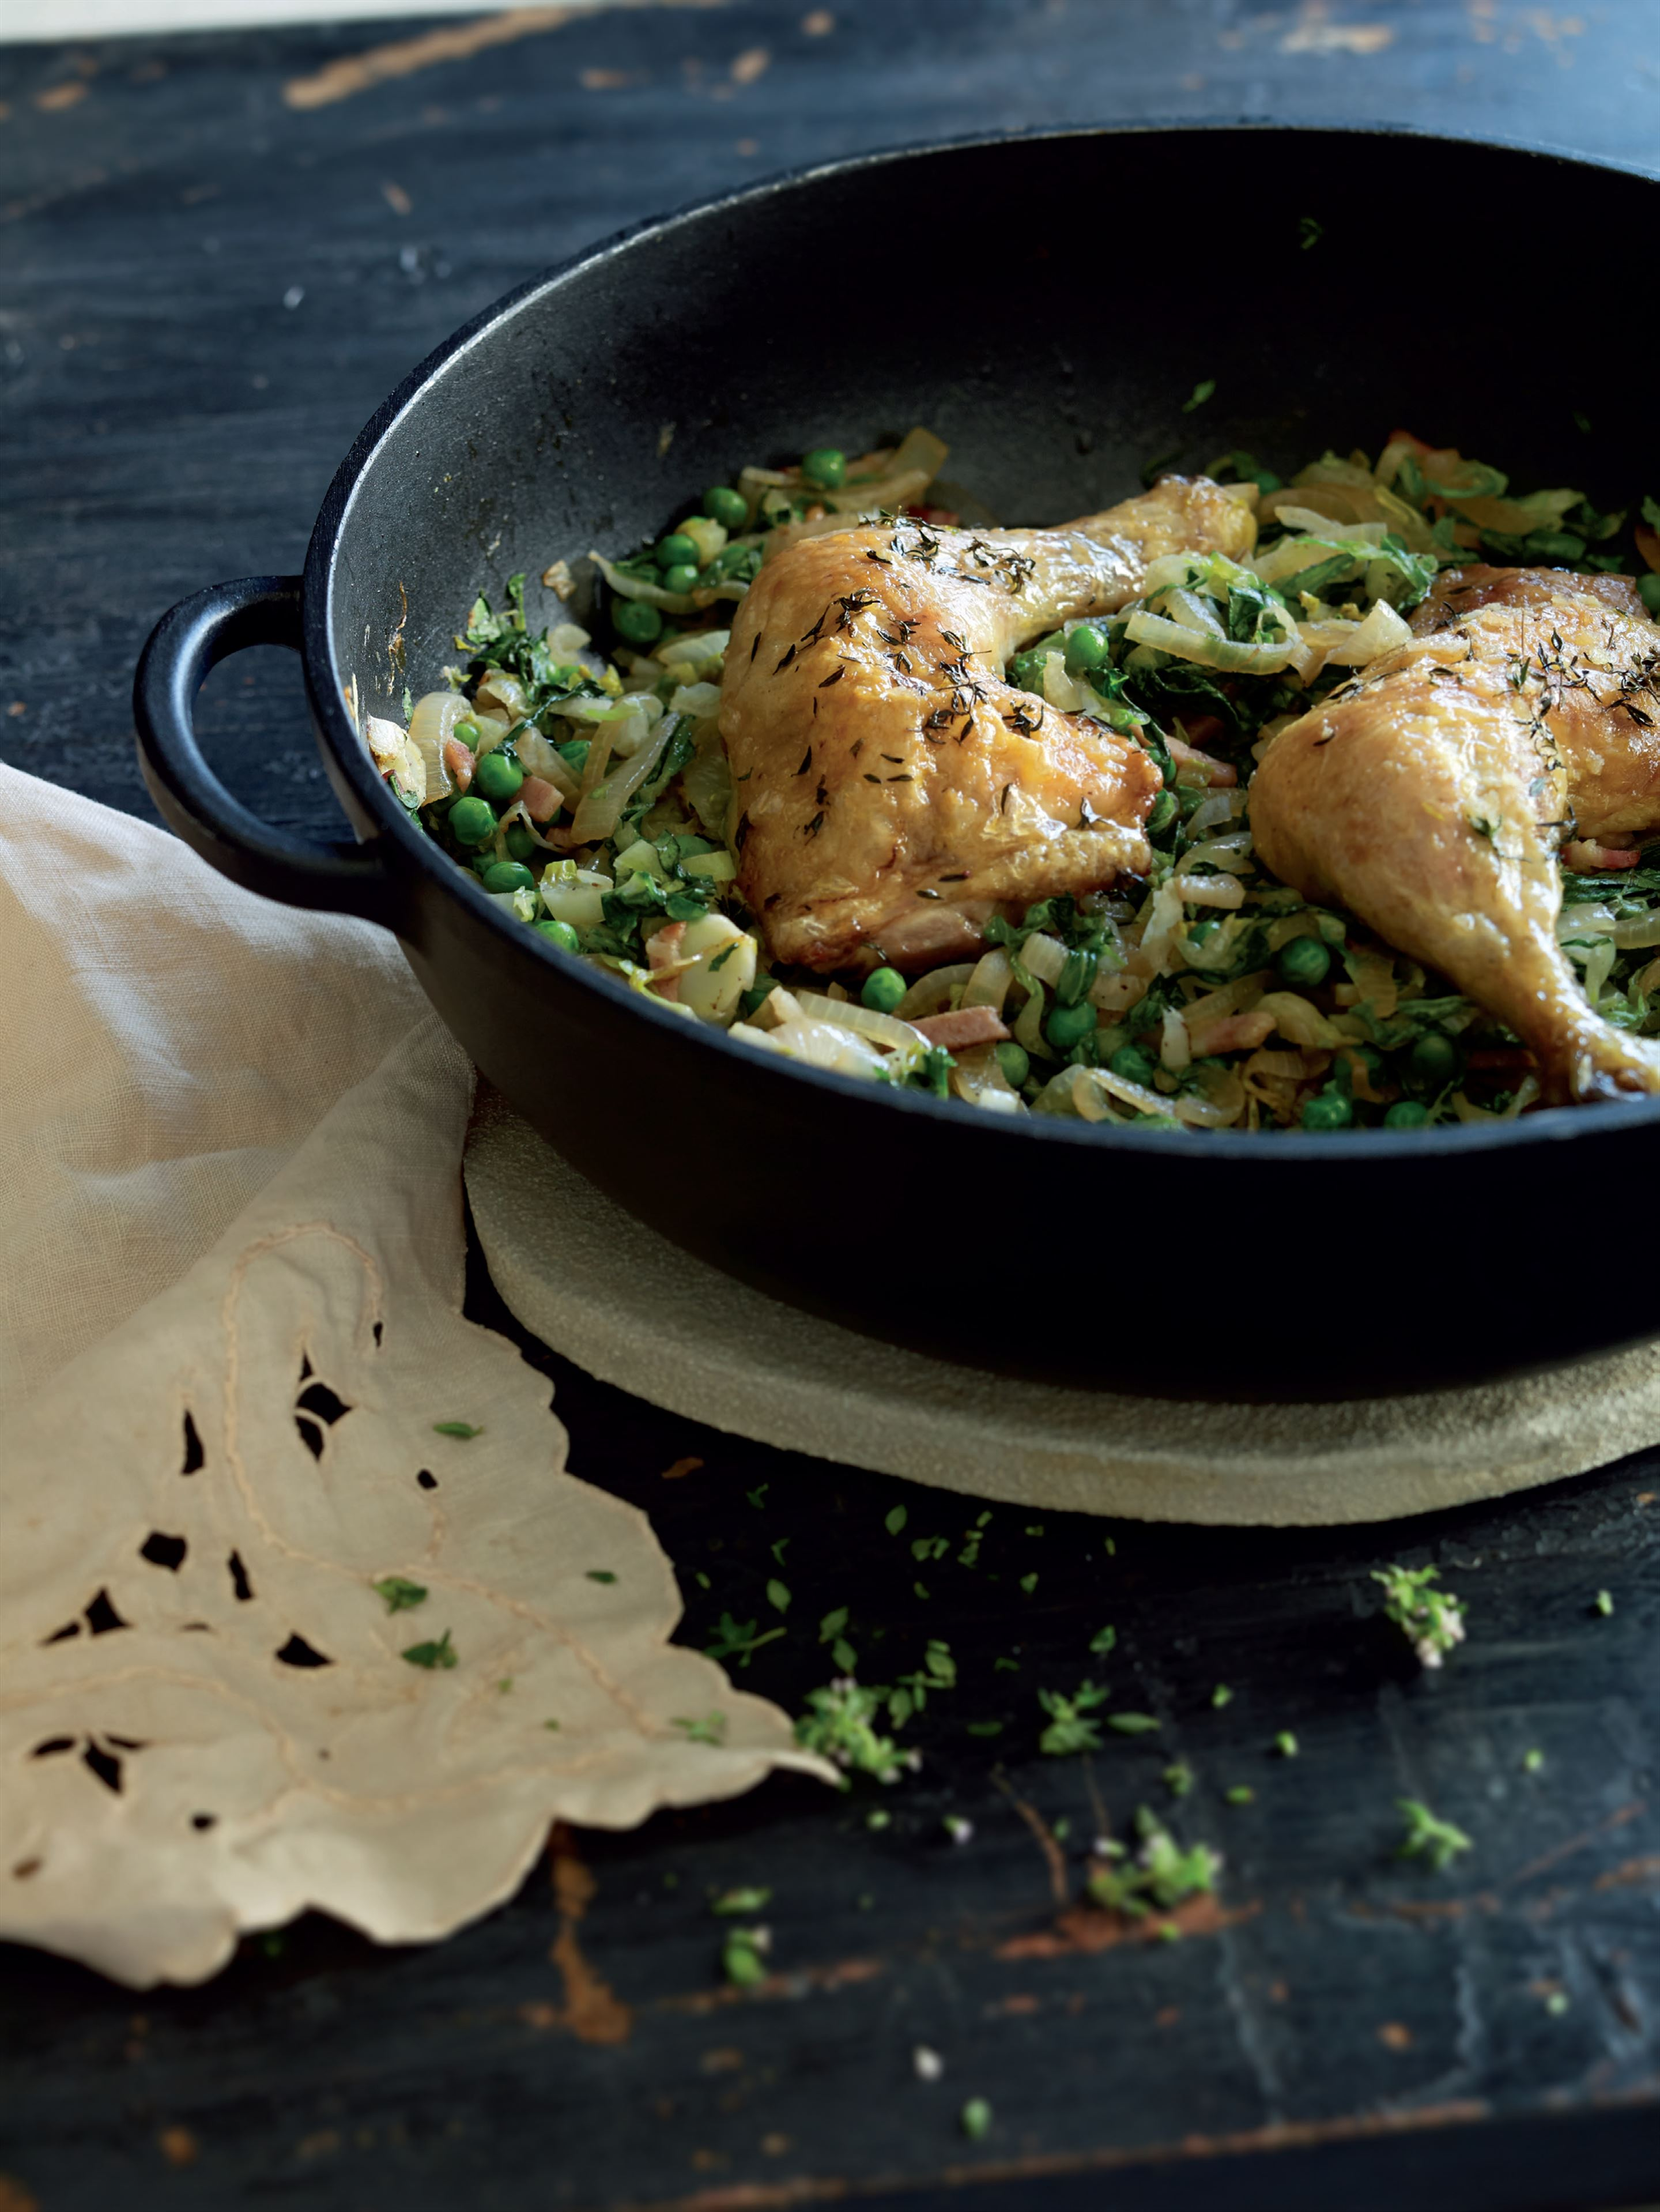 Thyme-roasted chicken legs with braised baby lettuce and peas